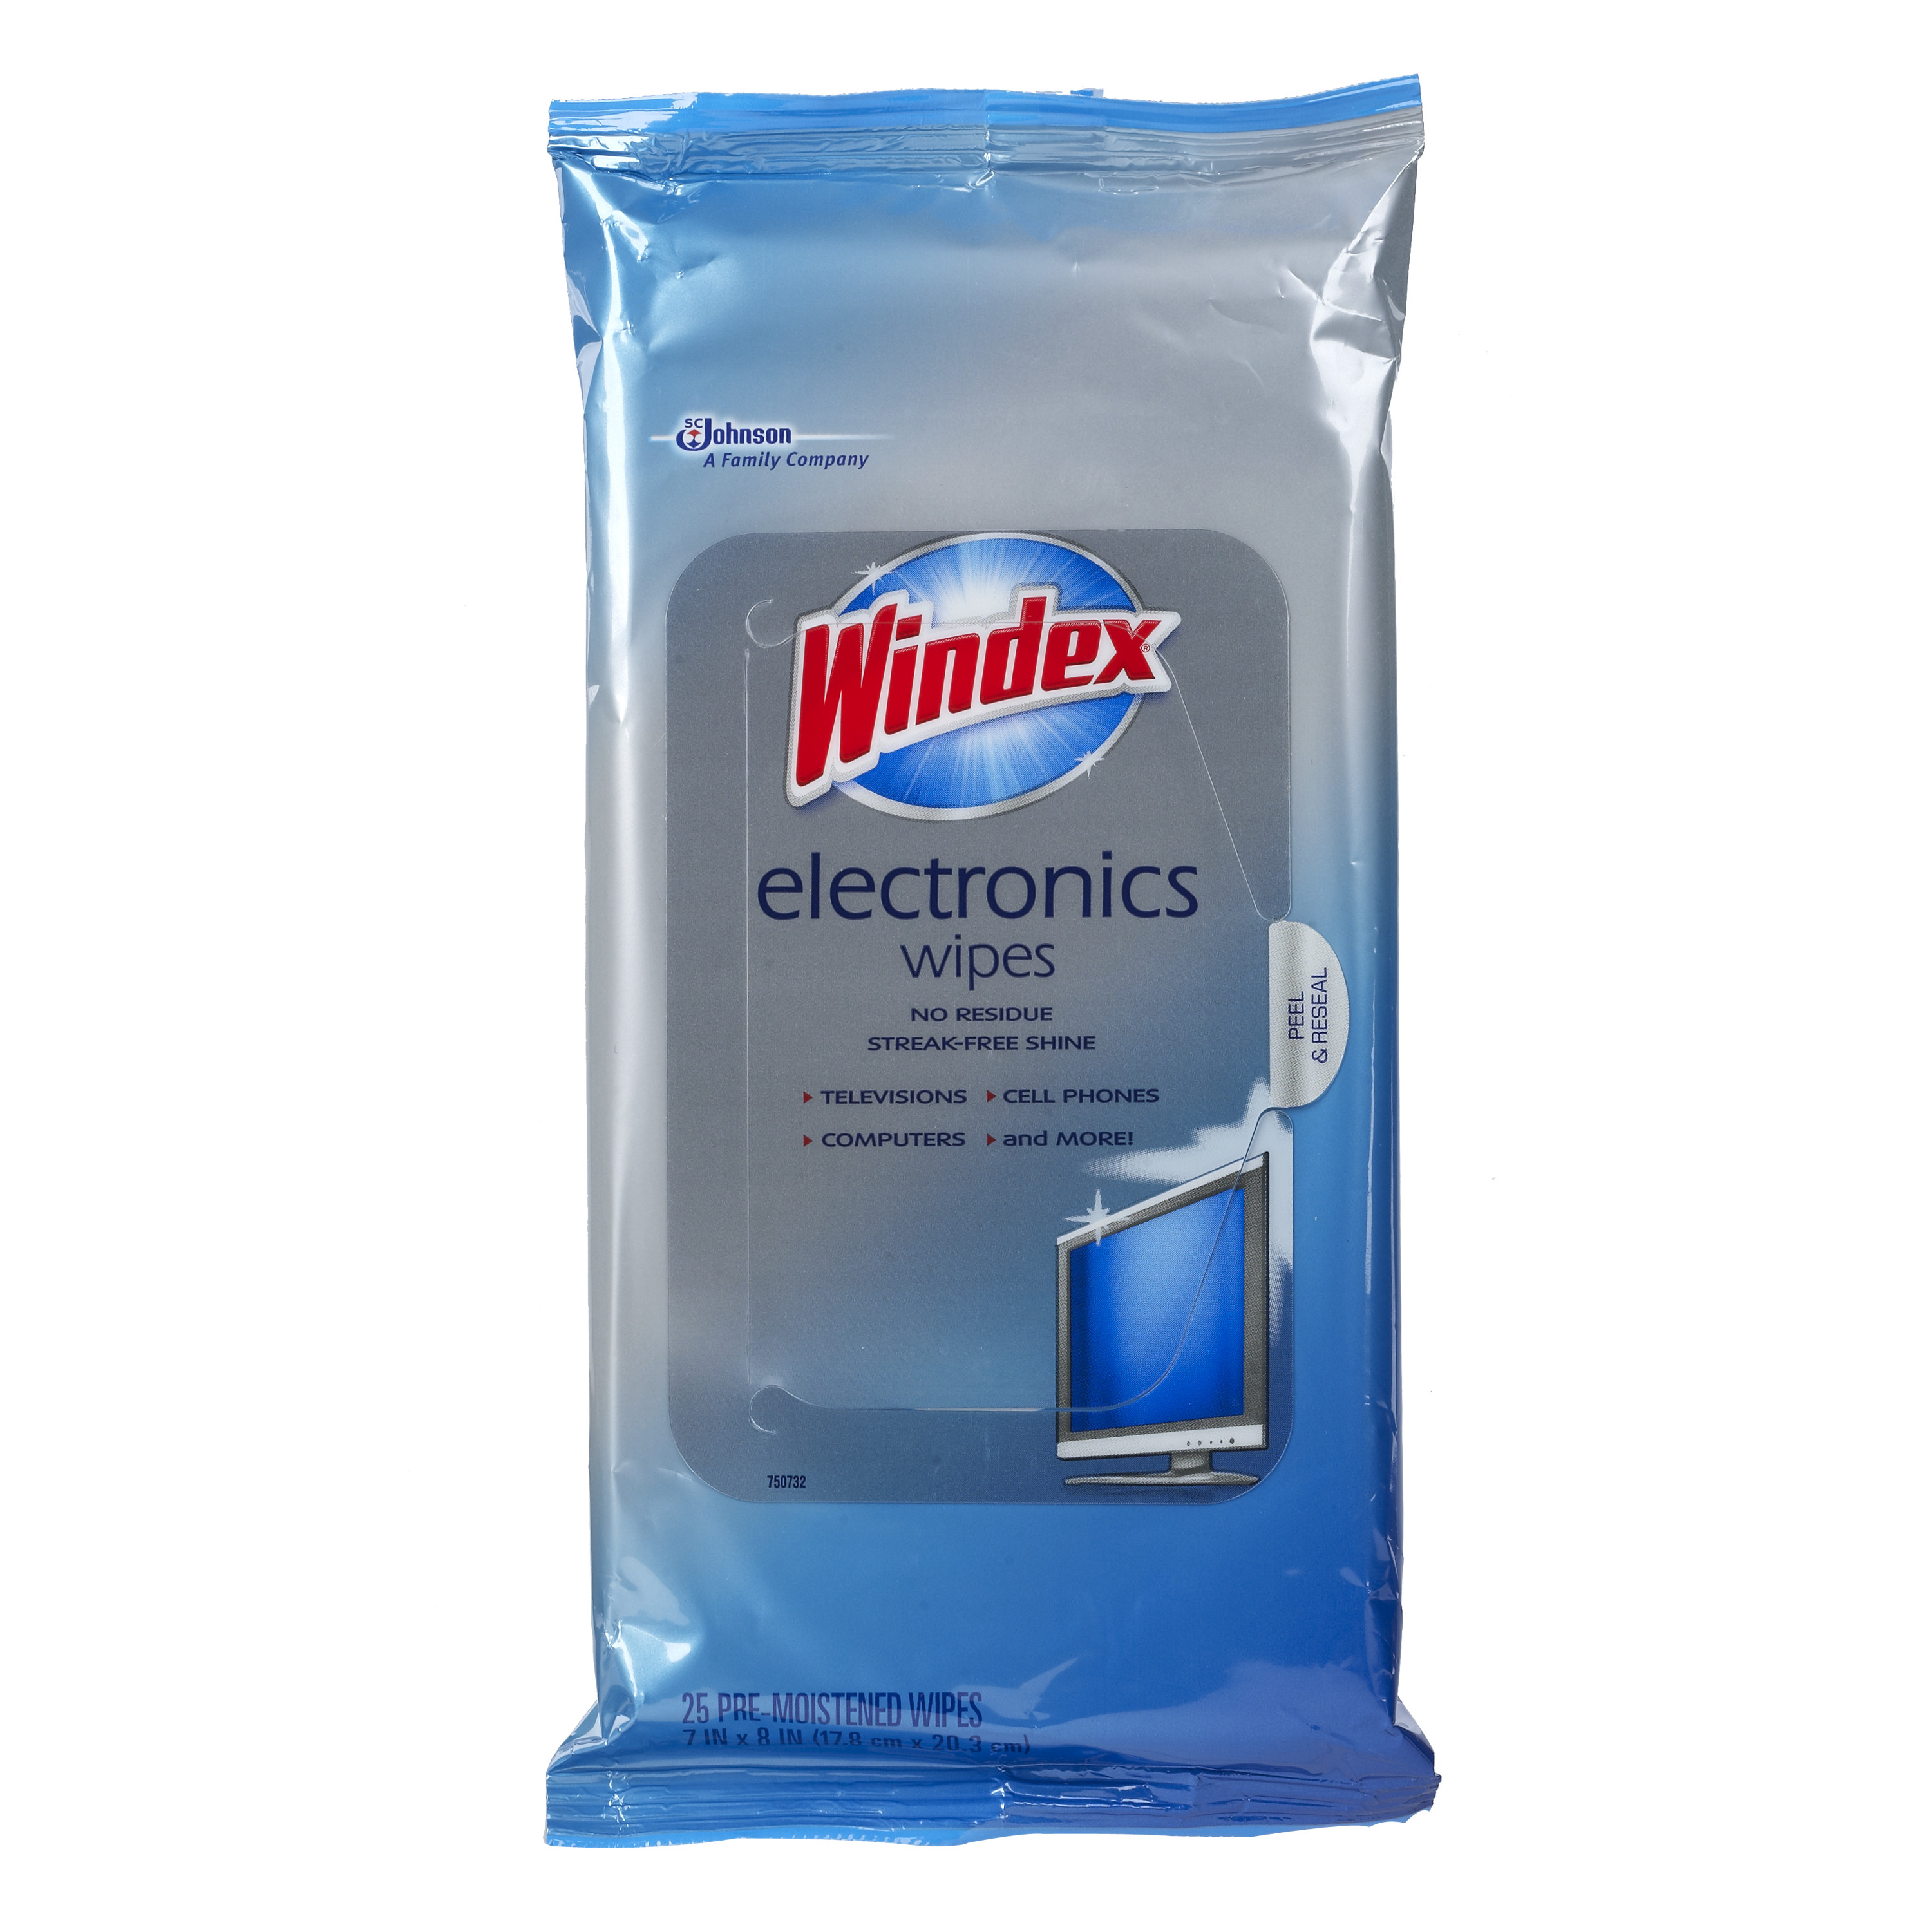 Windex Electronics Wipes 25 count